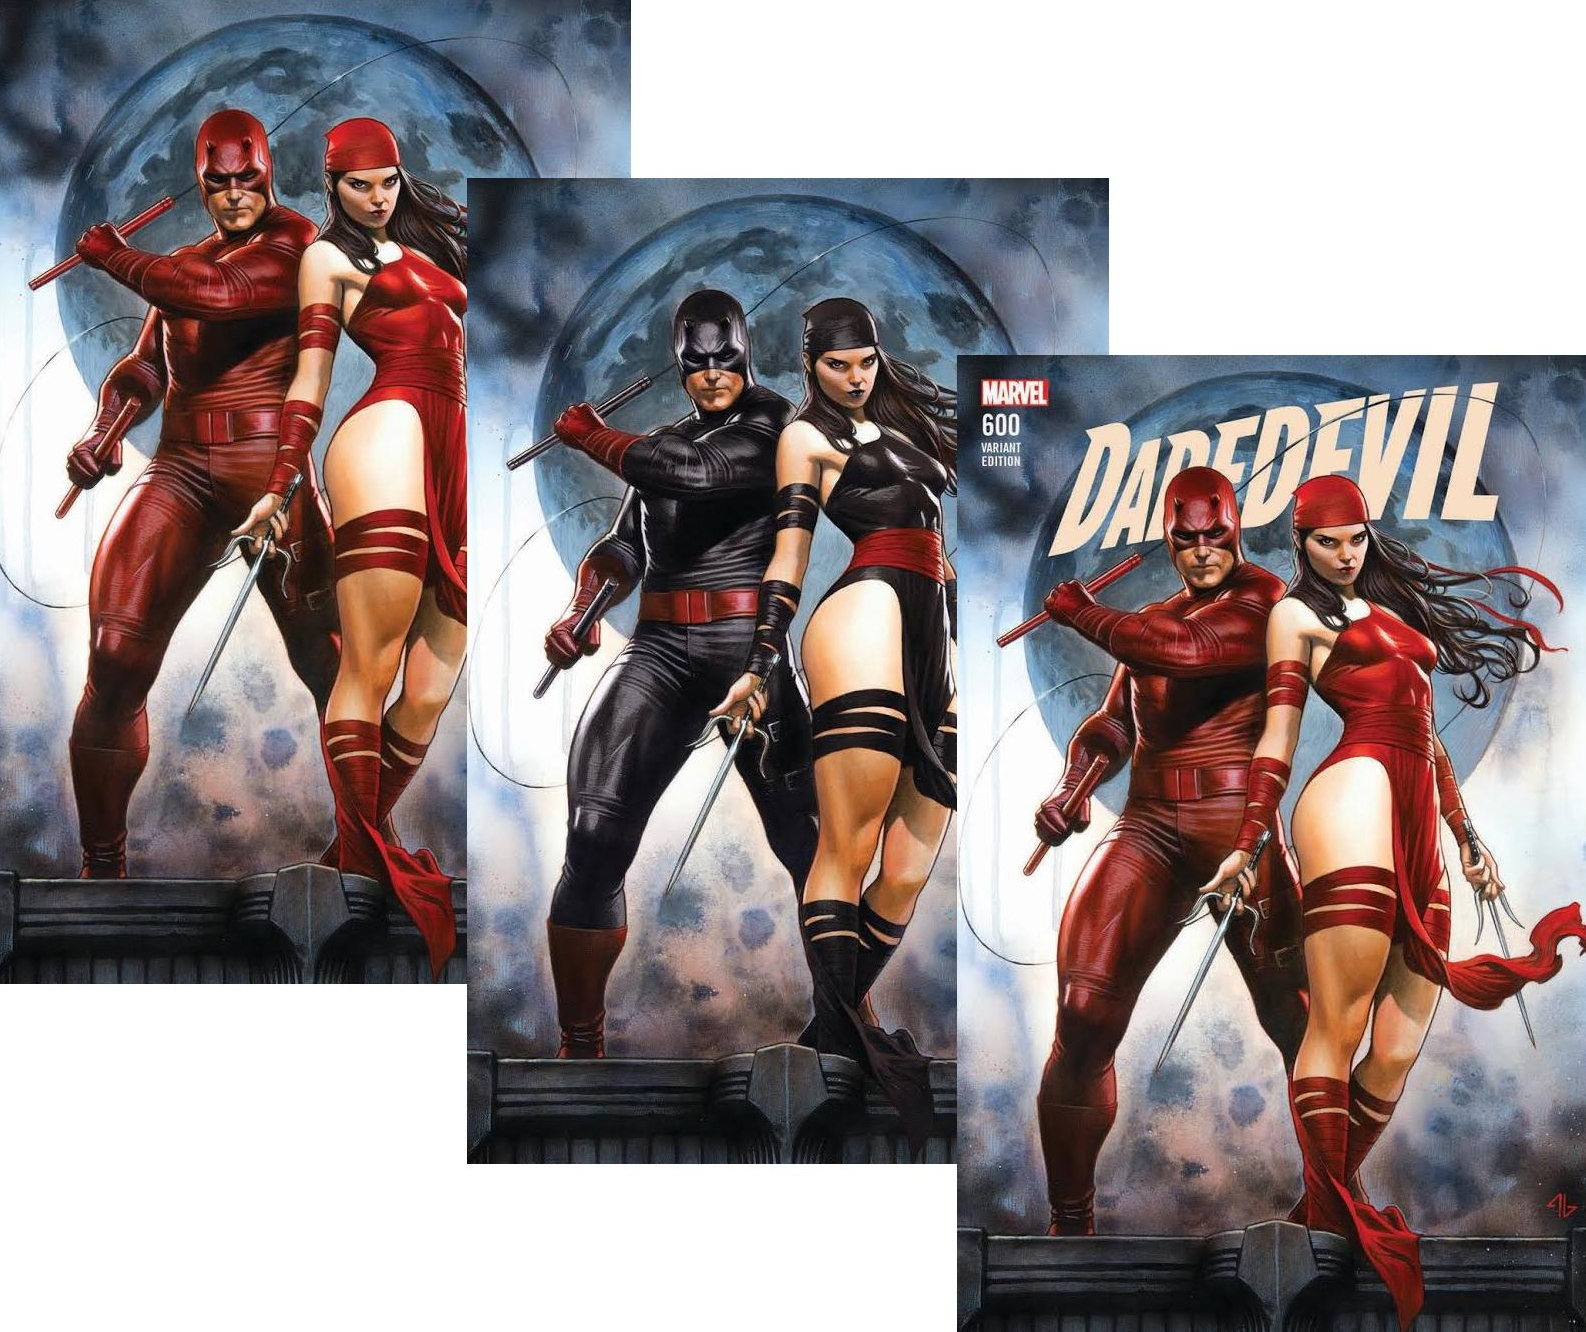 The three versions of the amazing Adi Granov variant, available only from us - click through on the image to order!